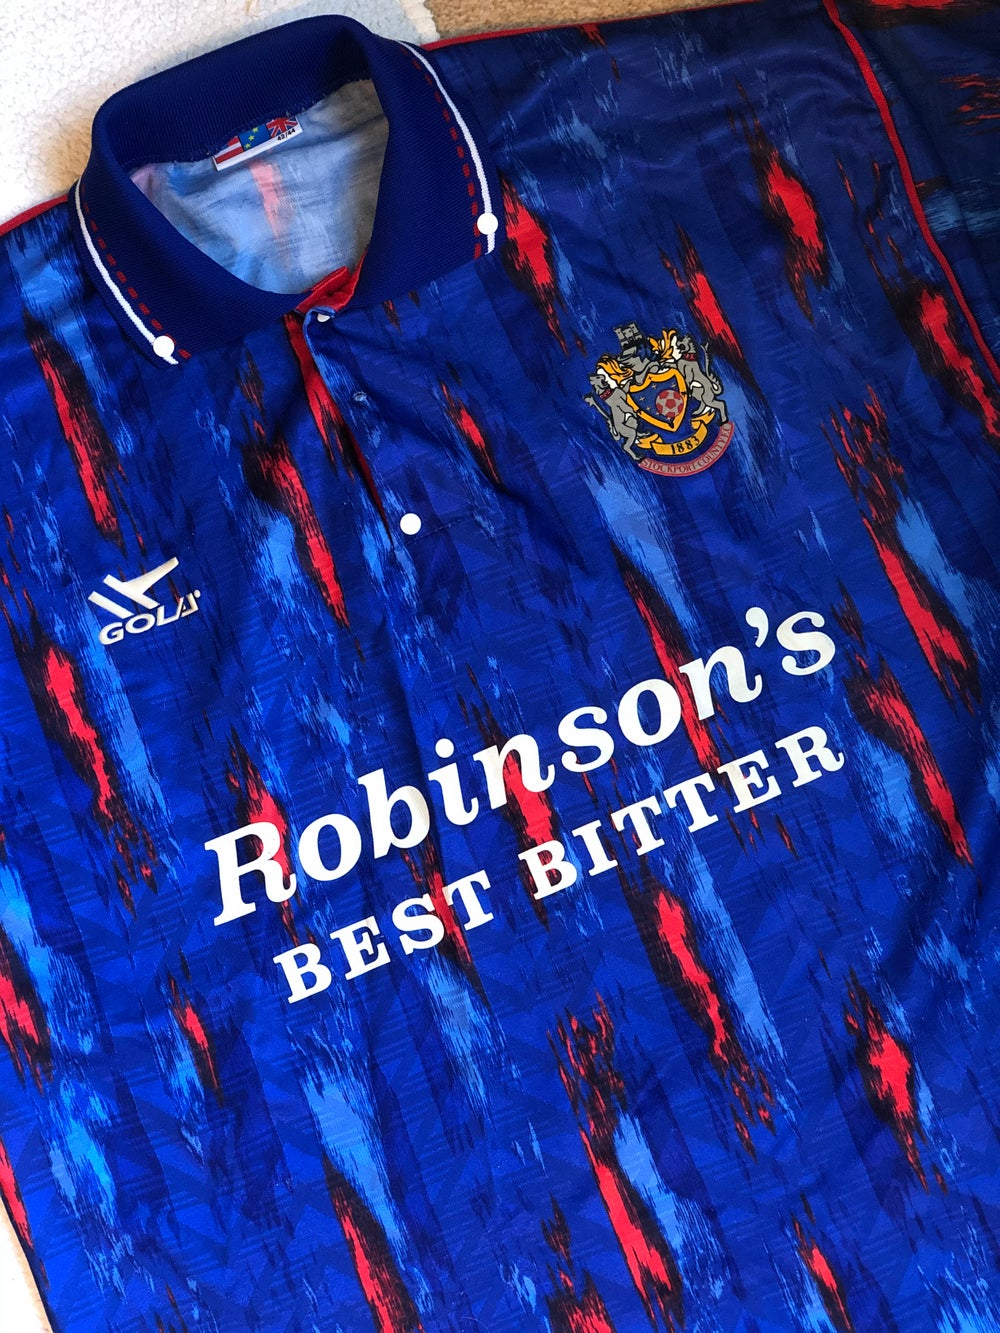 Image of Replica 1992/93 Gola Home Shirt